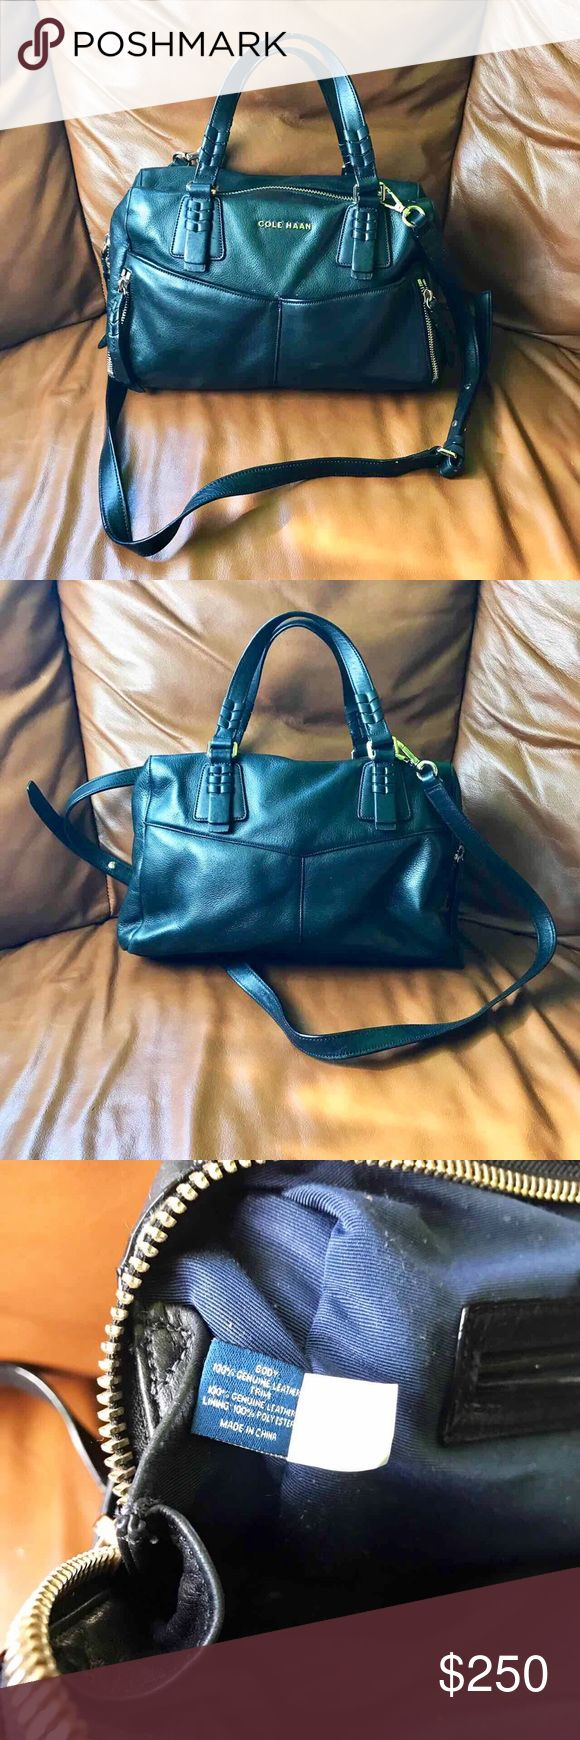 Cole Haan Leather Purse Good Condition. Removable adjustable shoulder straps. No trade. Open to offer. Cole Haan Bags